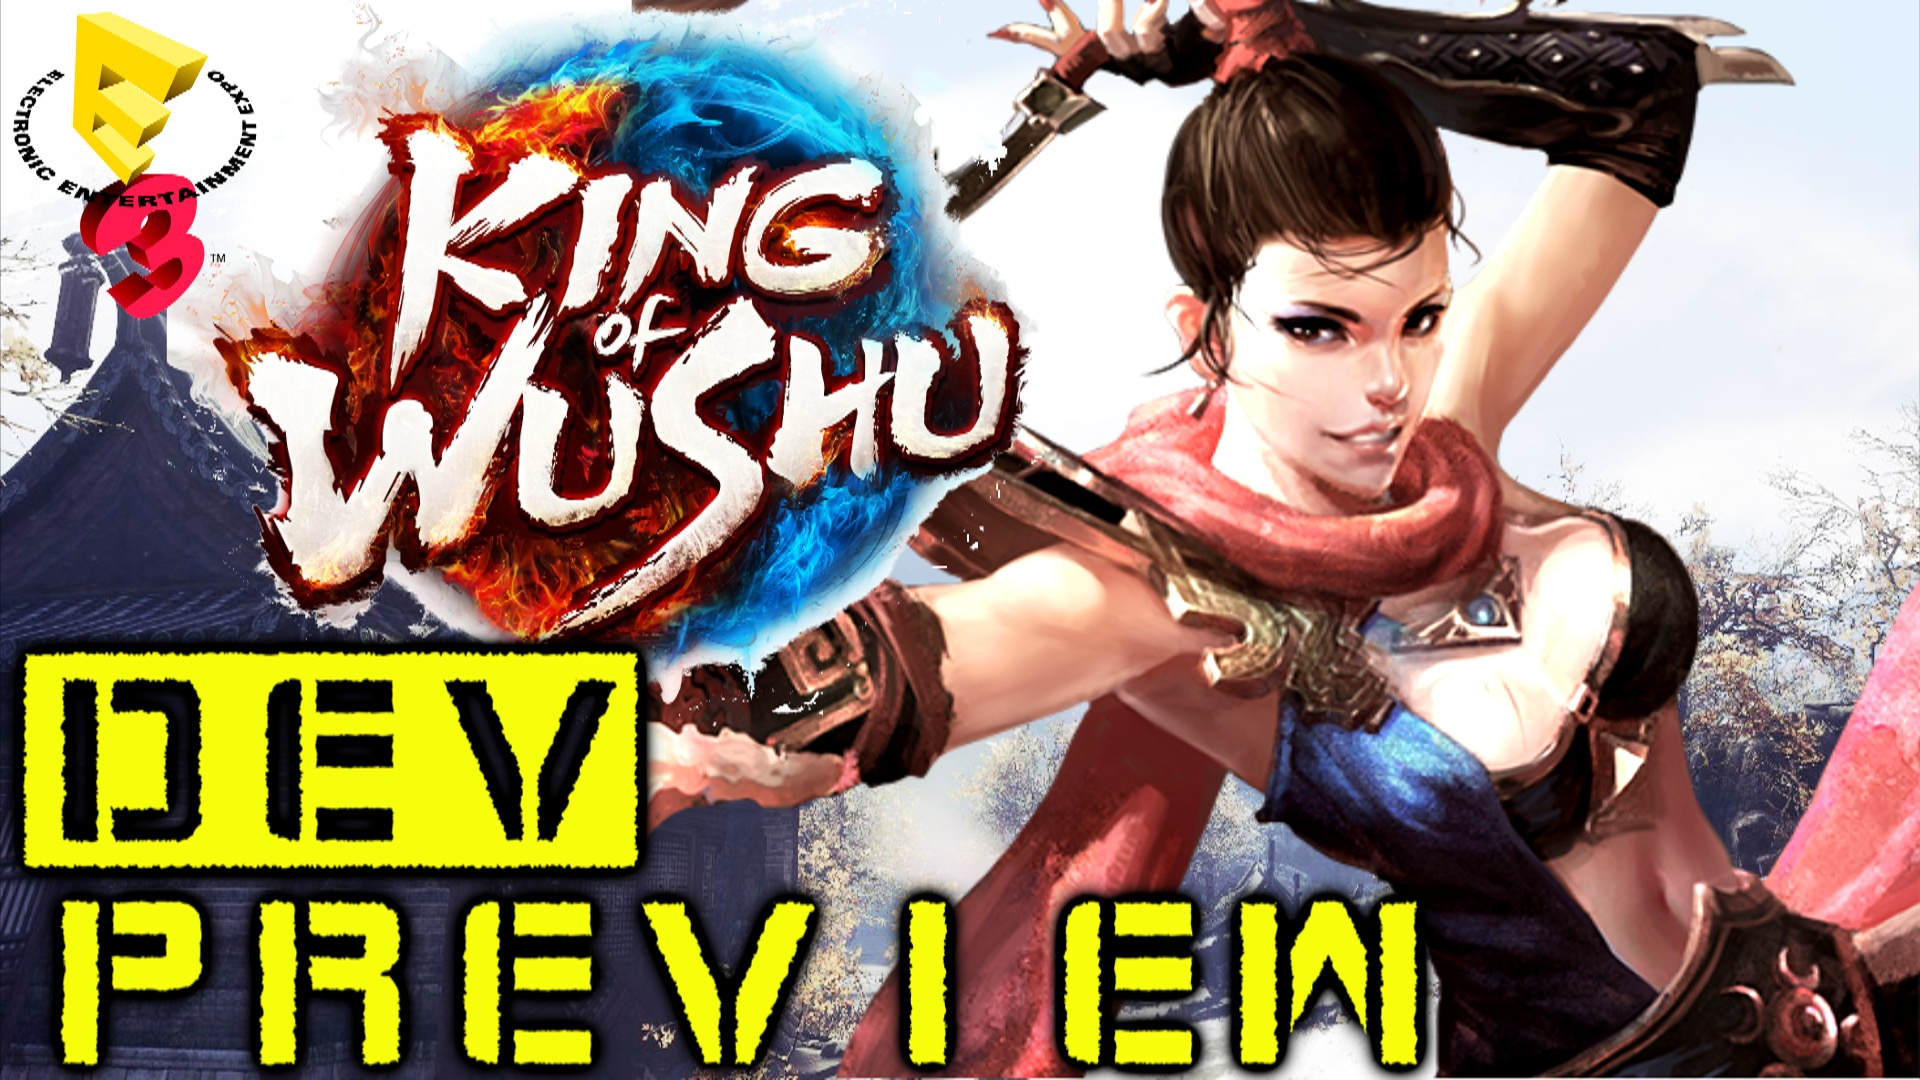 King of Wushu E3 Dev Preview E3 2015 MOBA Snail Games